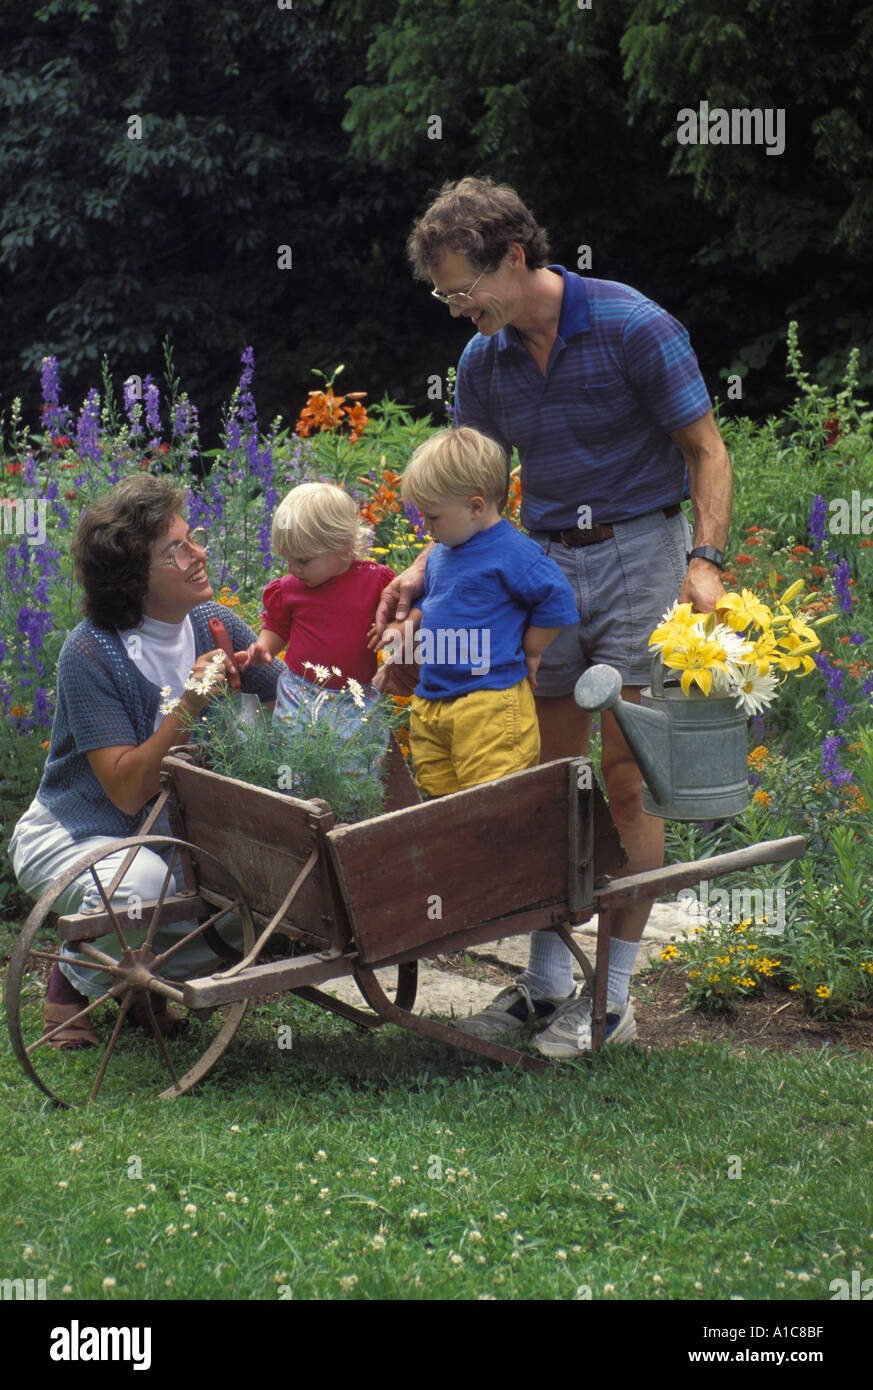 QUICK REFERENCE PLANTING GUIDE. 1. Light/Sun Exposure - Full to partial sun. 2. USDA Hardiness Zones - Not winter hardy. Will thrive from spring to fall in all zones. 3. Planting Distance - 2 to 3 feet apart in ground. One plant per 16 inch or larger container.